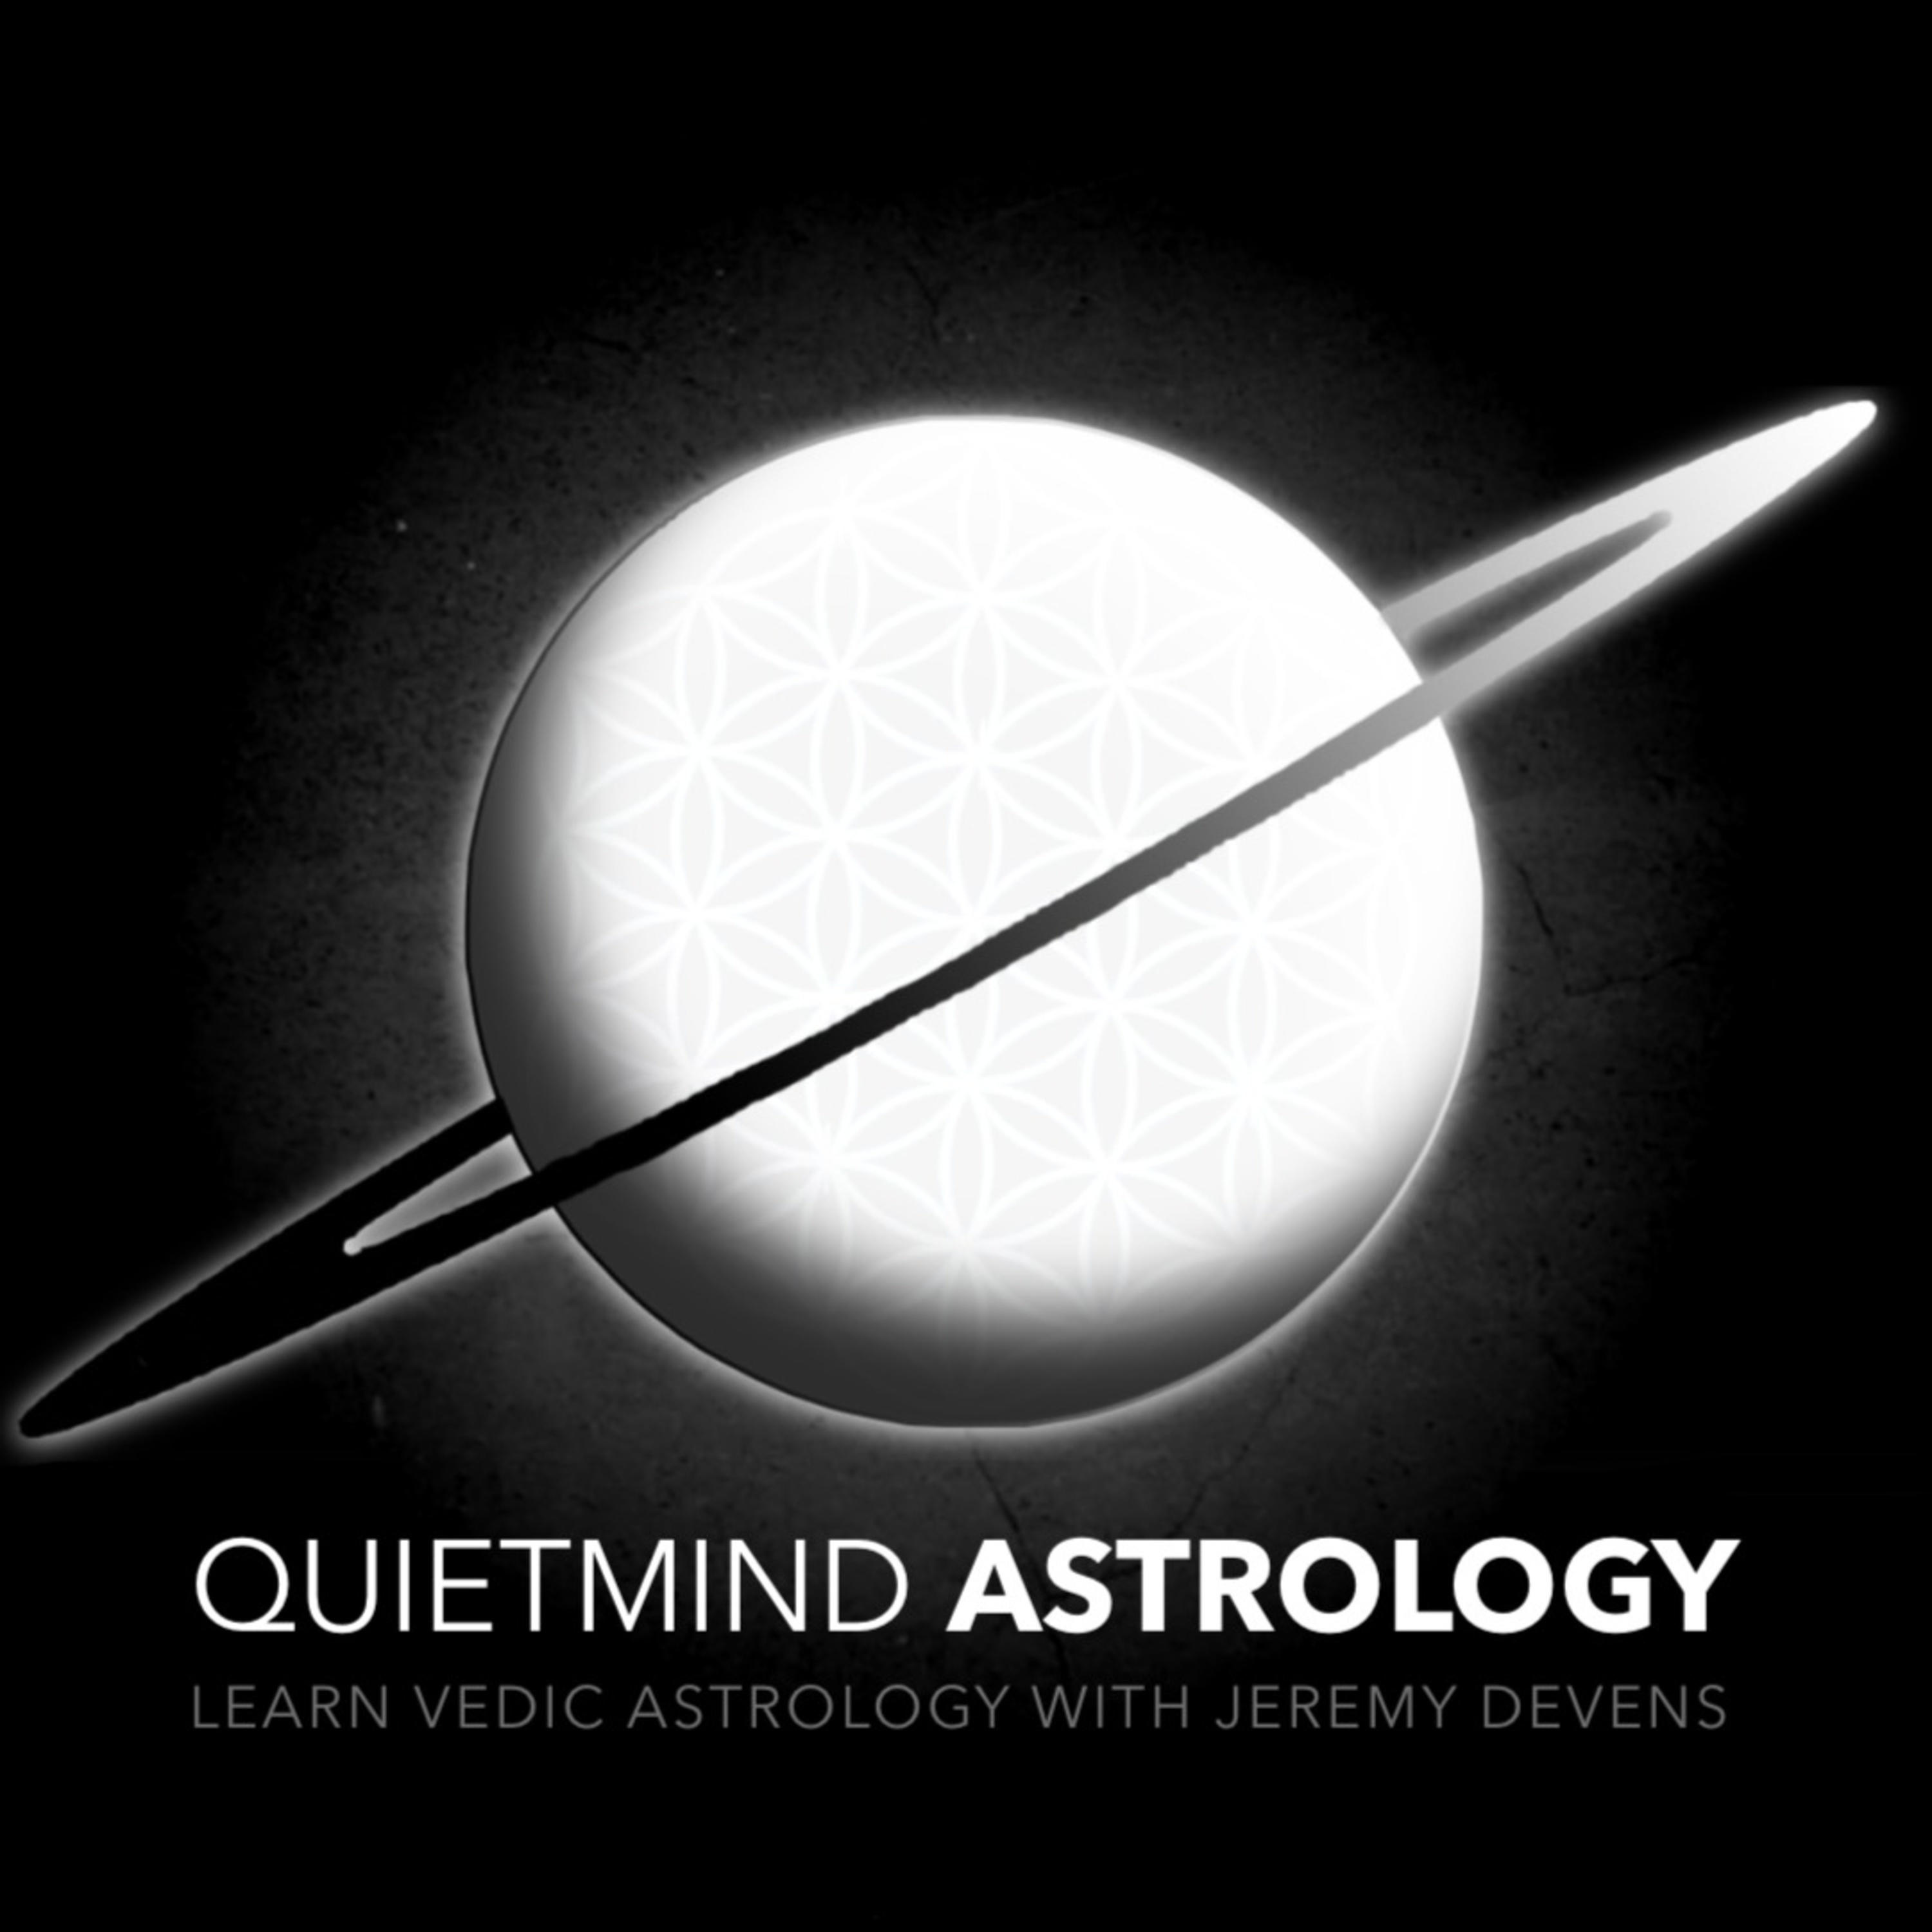 Quietmind Astrology — Learn Vedic Astrology with Jeremy Devens